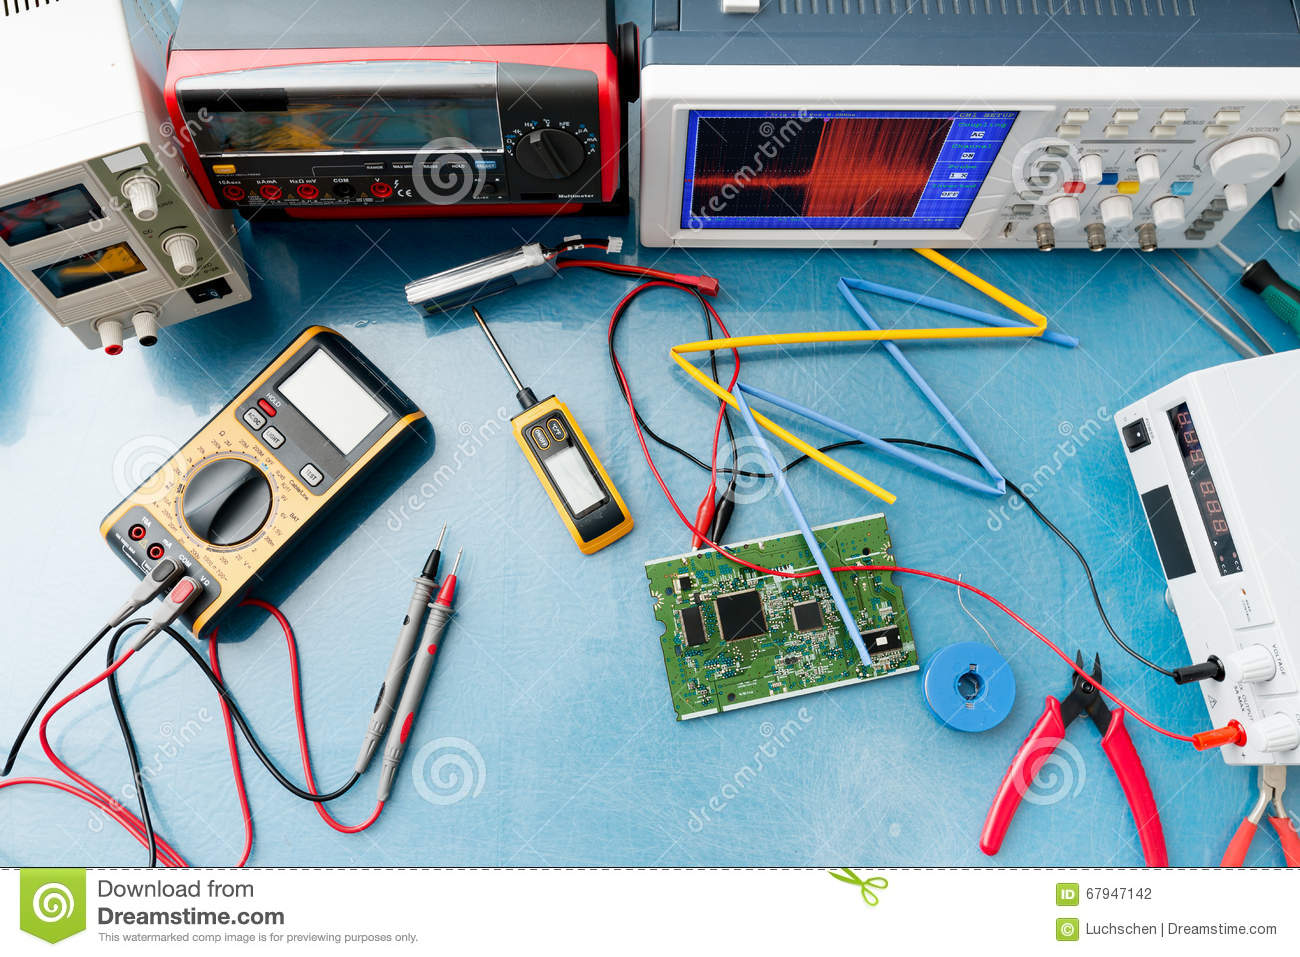 Electronic Measuring Instruments : Electronic measuring stock photo image of calibration